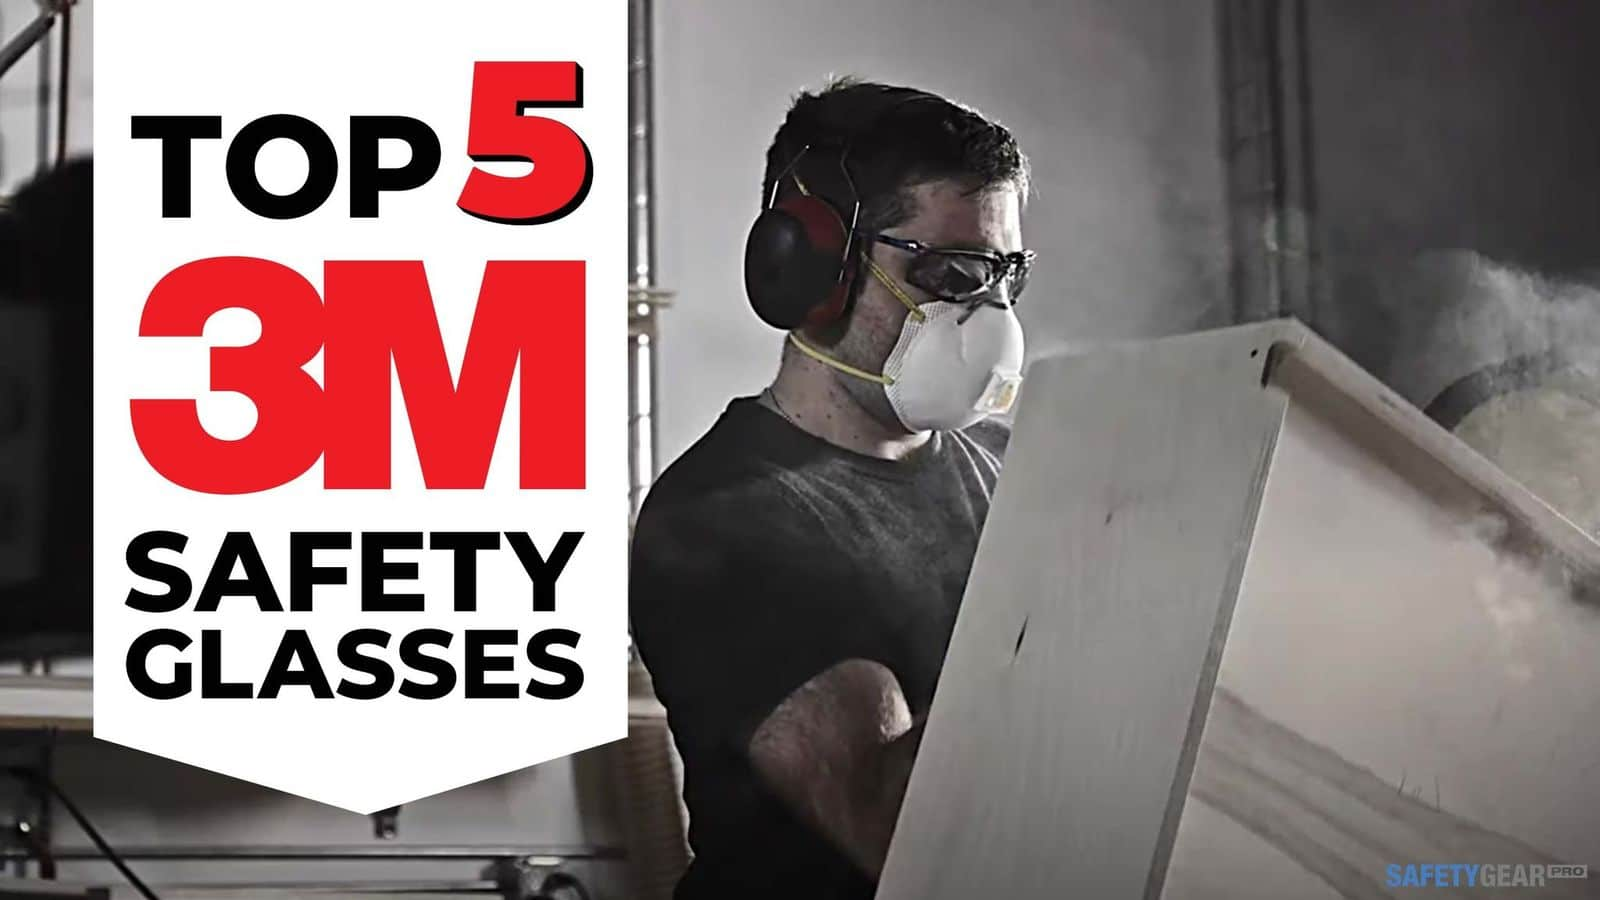 Top 3M Safety Glasses for Your Protection Header